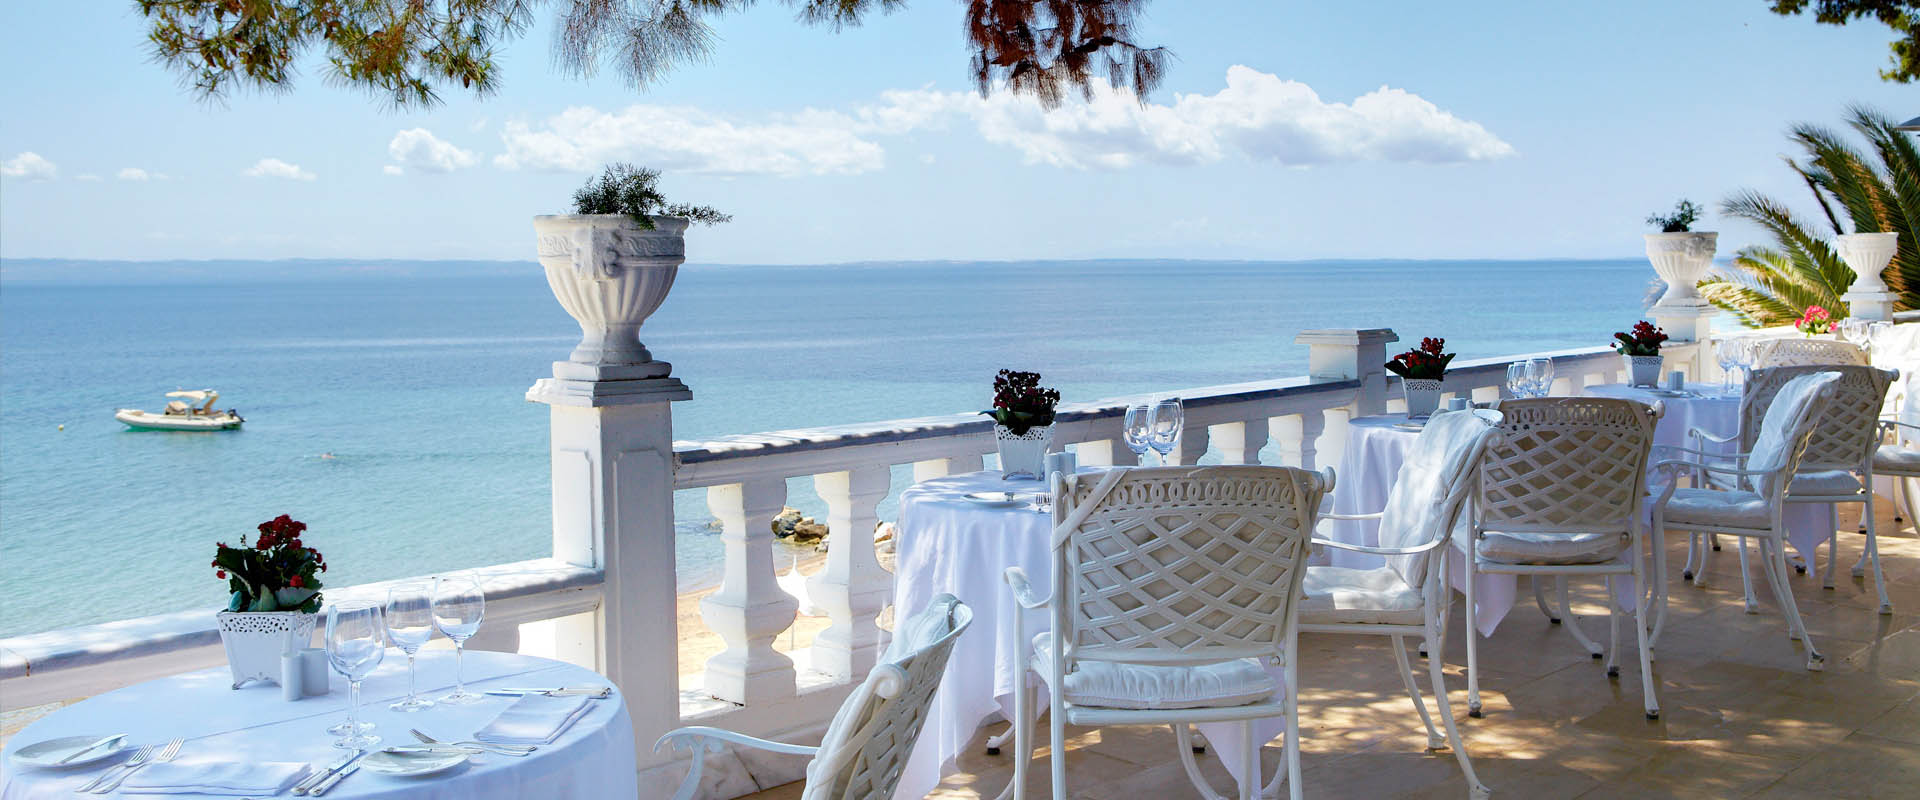 danai-beach-resort-restaurant